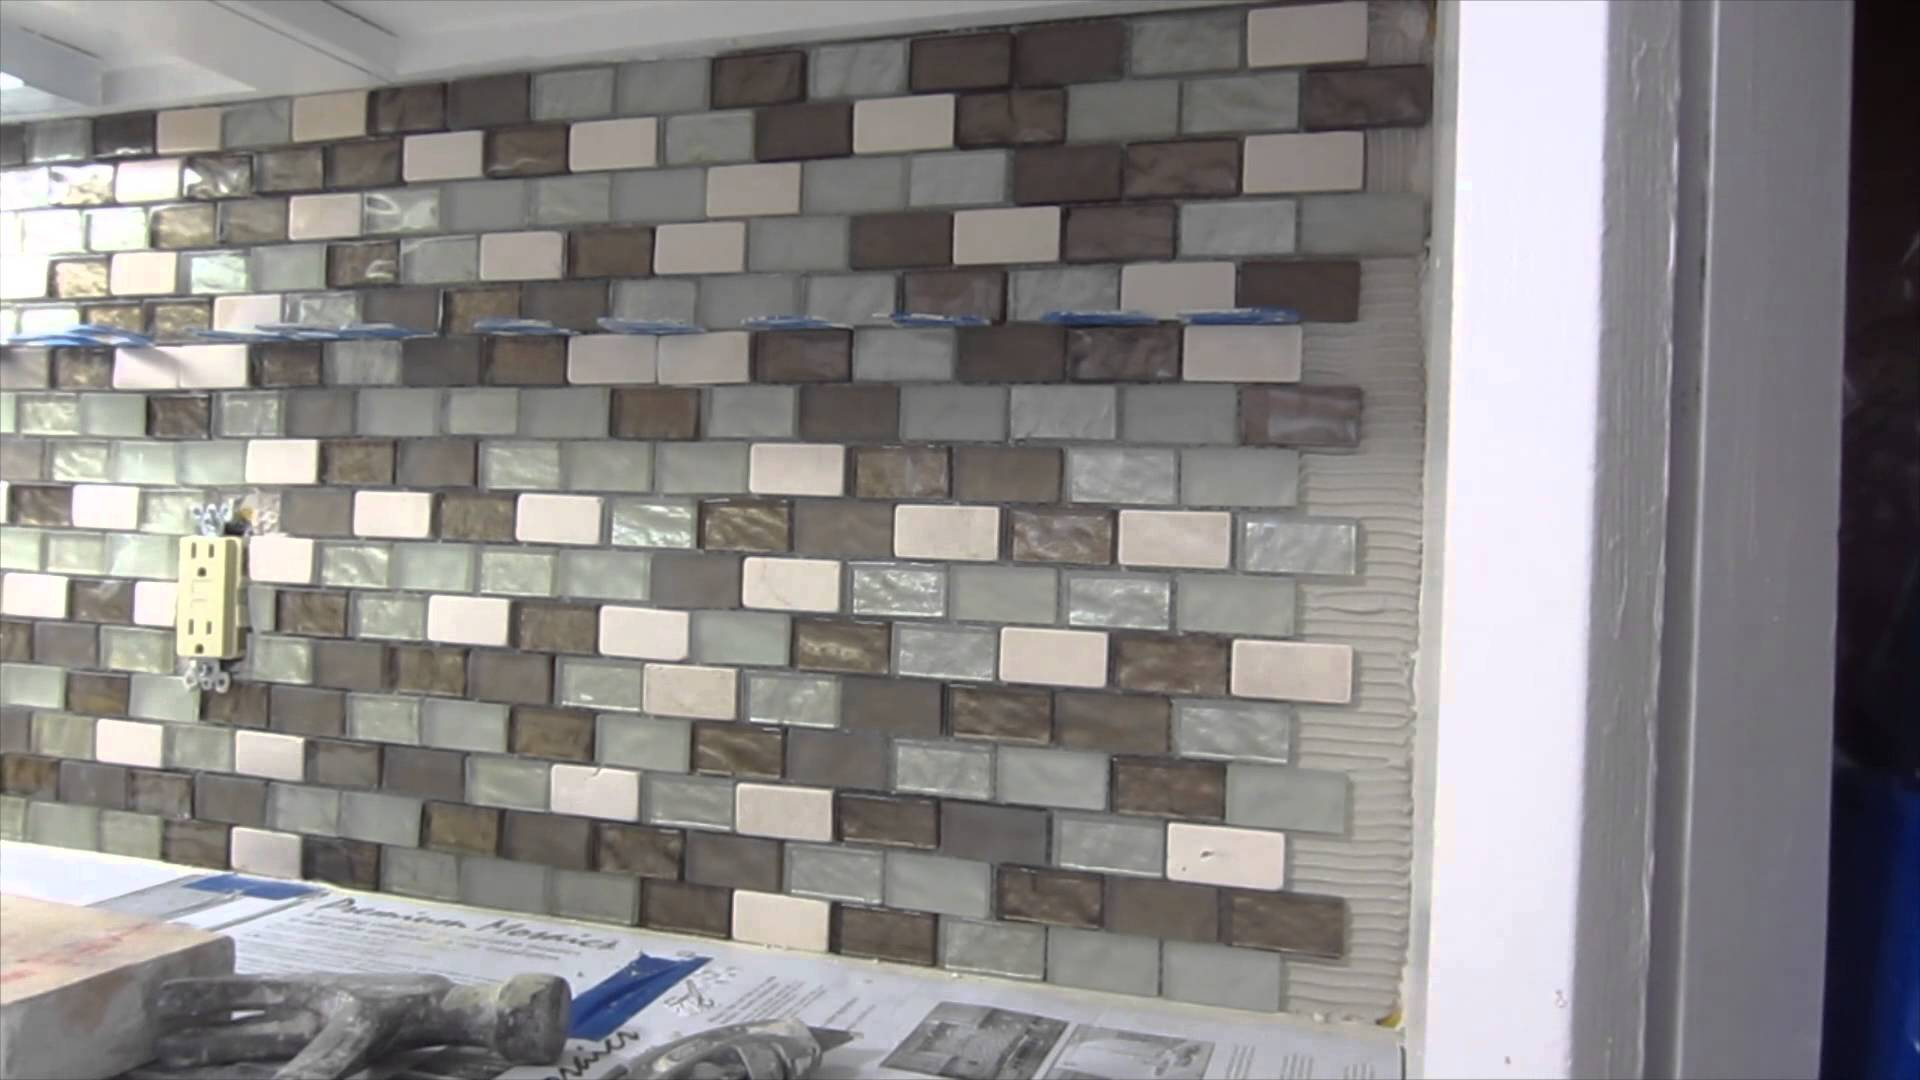 - THE GLASS MOSAIC TILE: WHERE DO YOU BEGIN? - Stylish Home Improvement